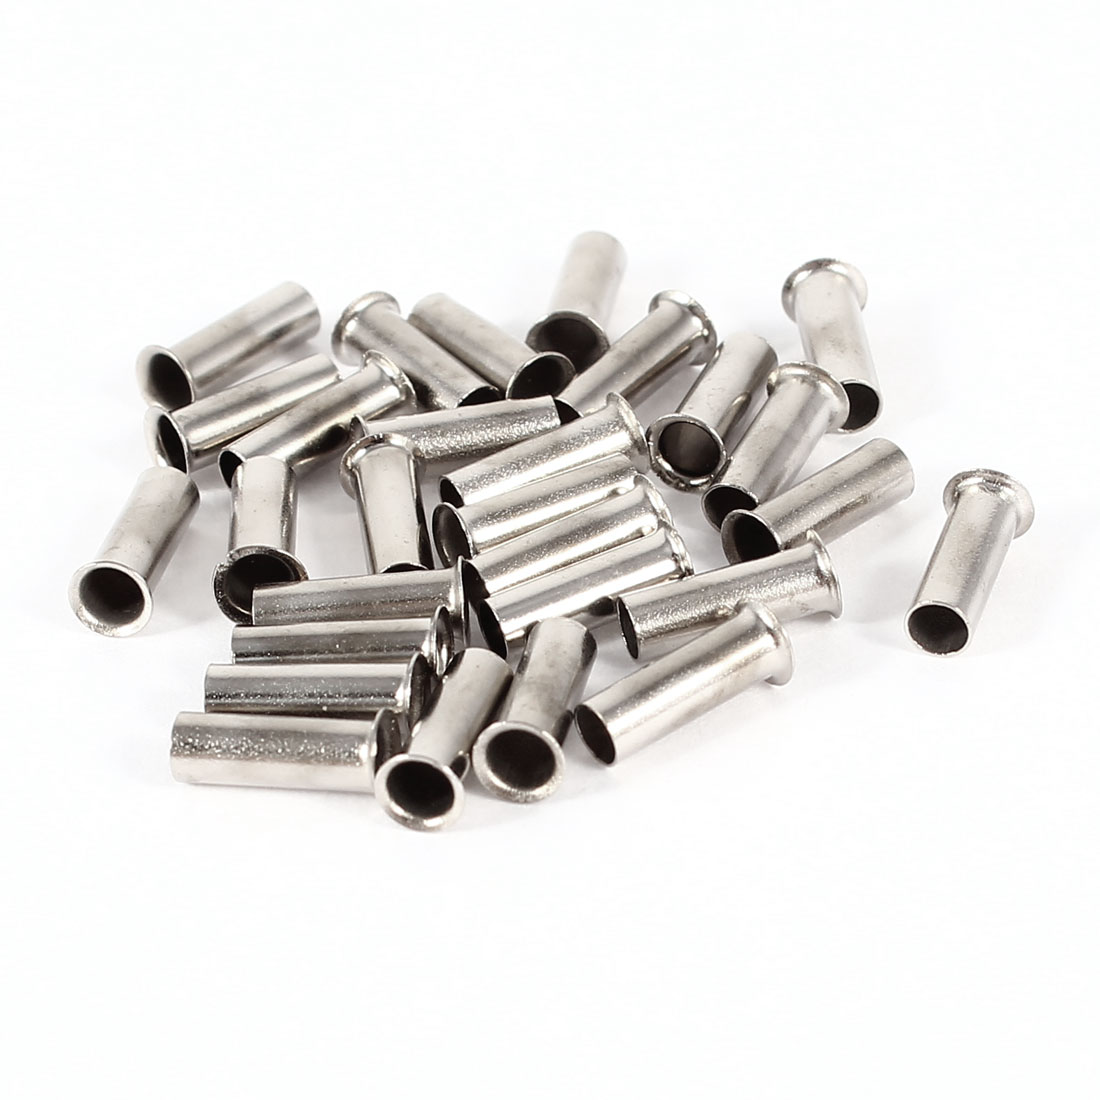 30 Pieces Silver Tone EN2508 Copper A.W.G 14 8mmx3mm Non-Insulated Wire Ferrules